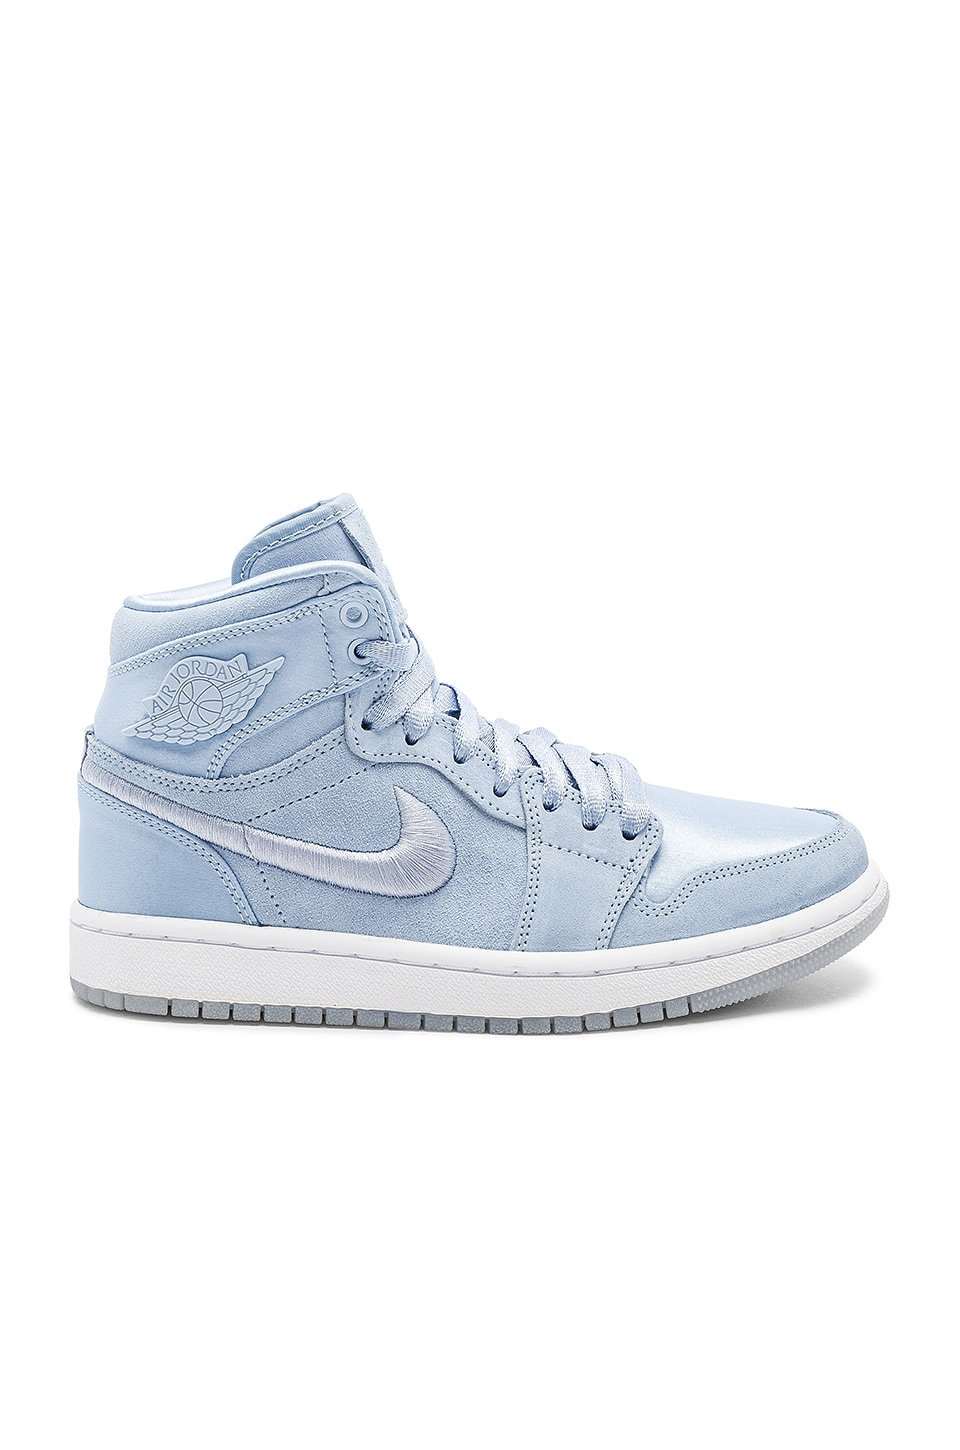 020cecd779e8ed Nike Air Jordan 1 Retro High SOH in Hydrogen Blue   White Metallic Gold